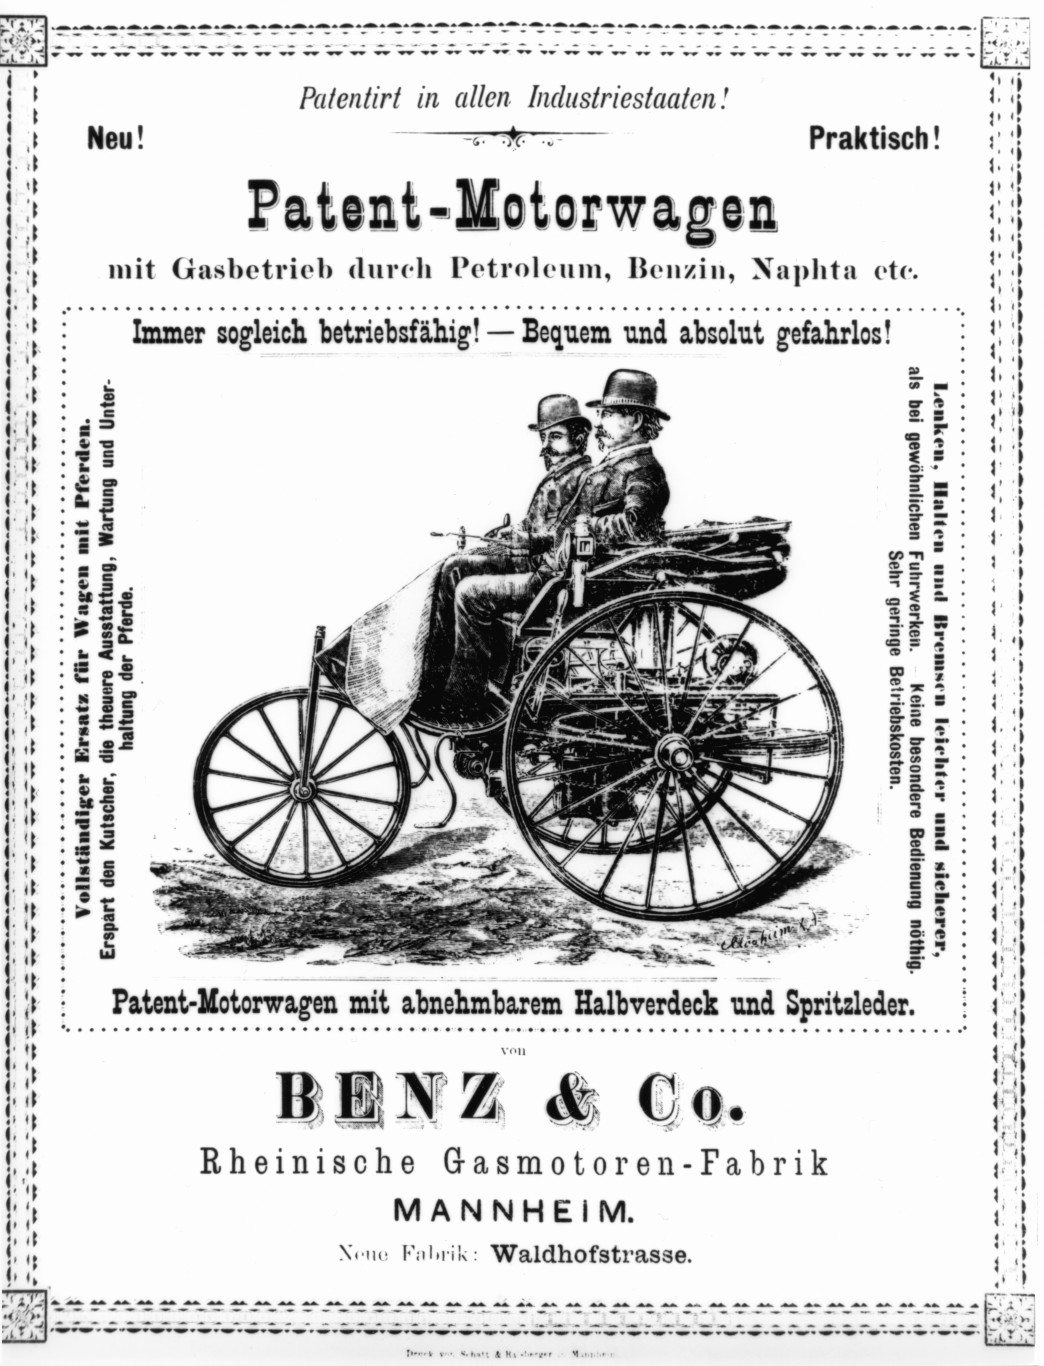 Early advertisement for the Benz & Co. Patent-Motorwagen.